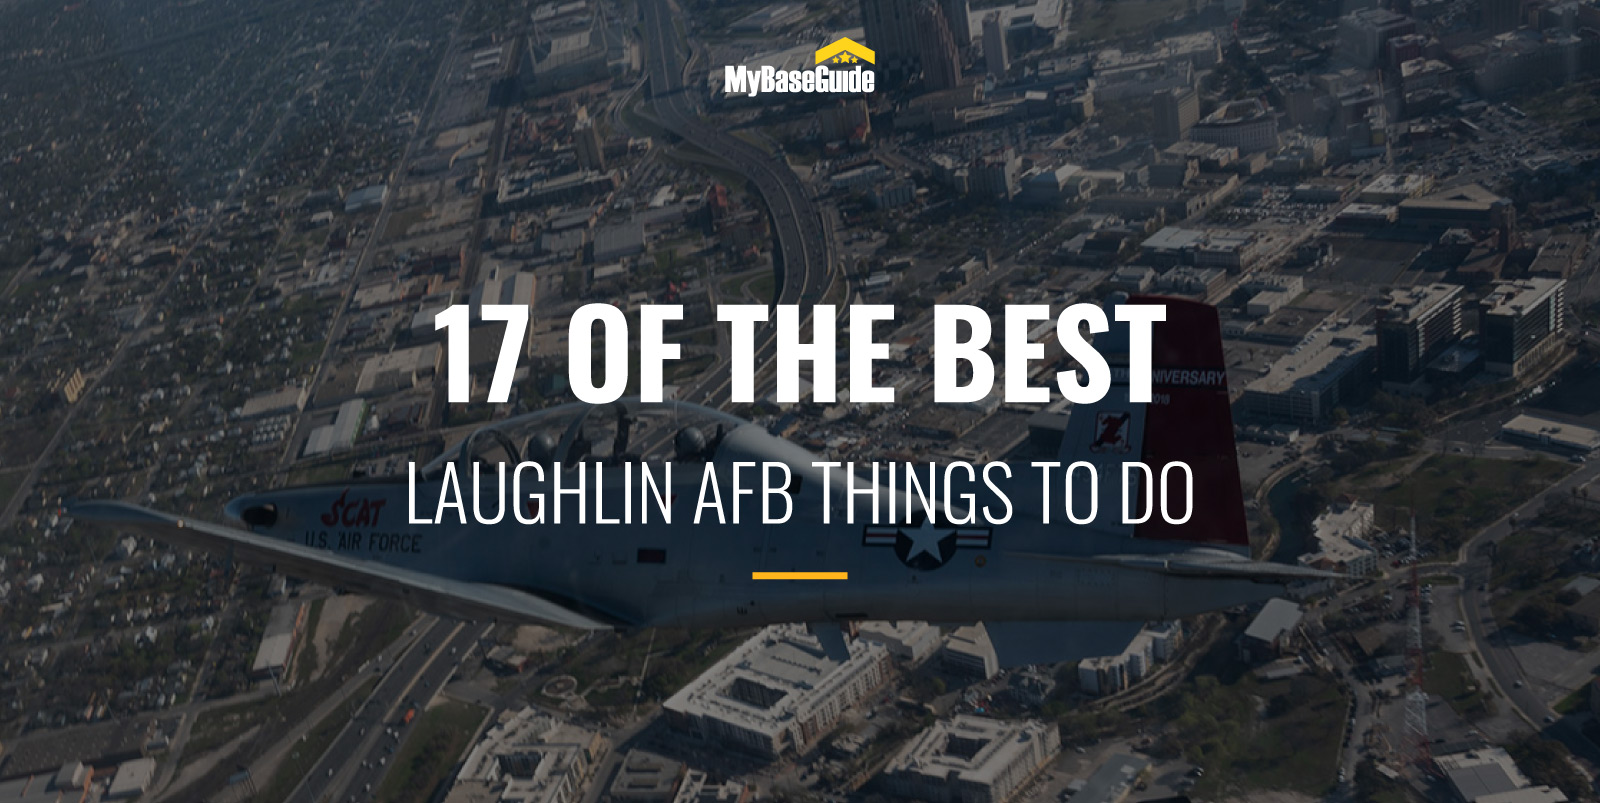 17 Of the Best Laughlin AFB Things to Do